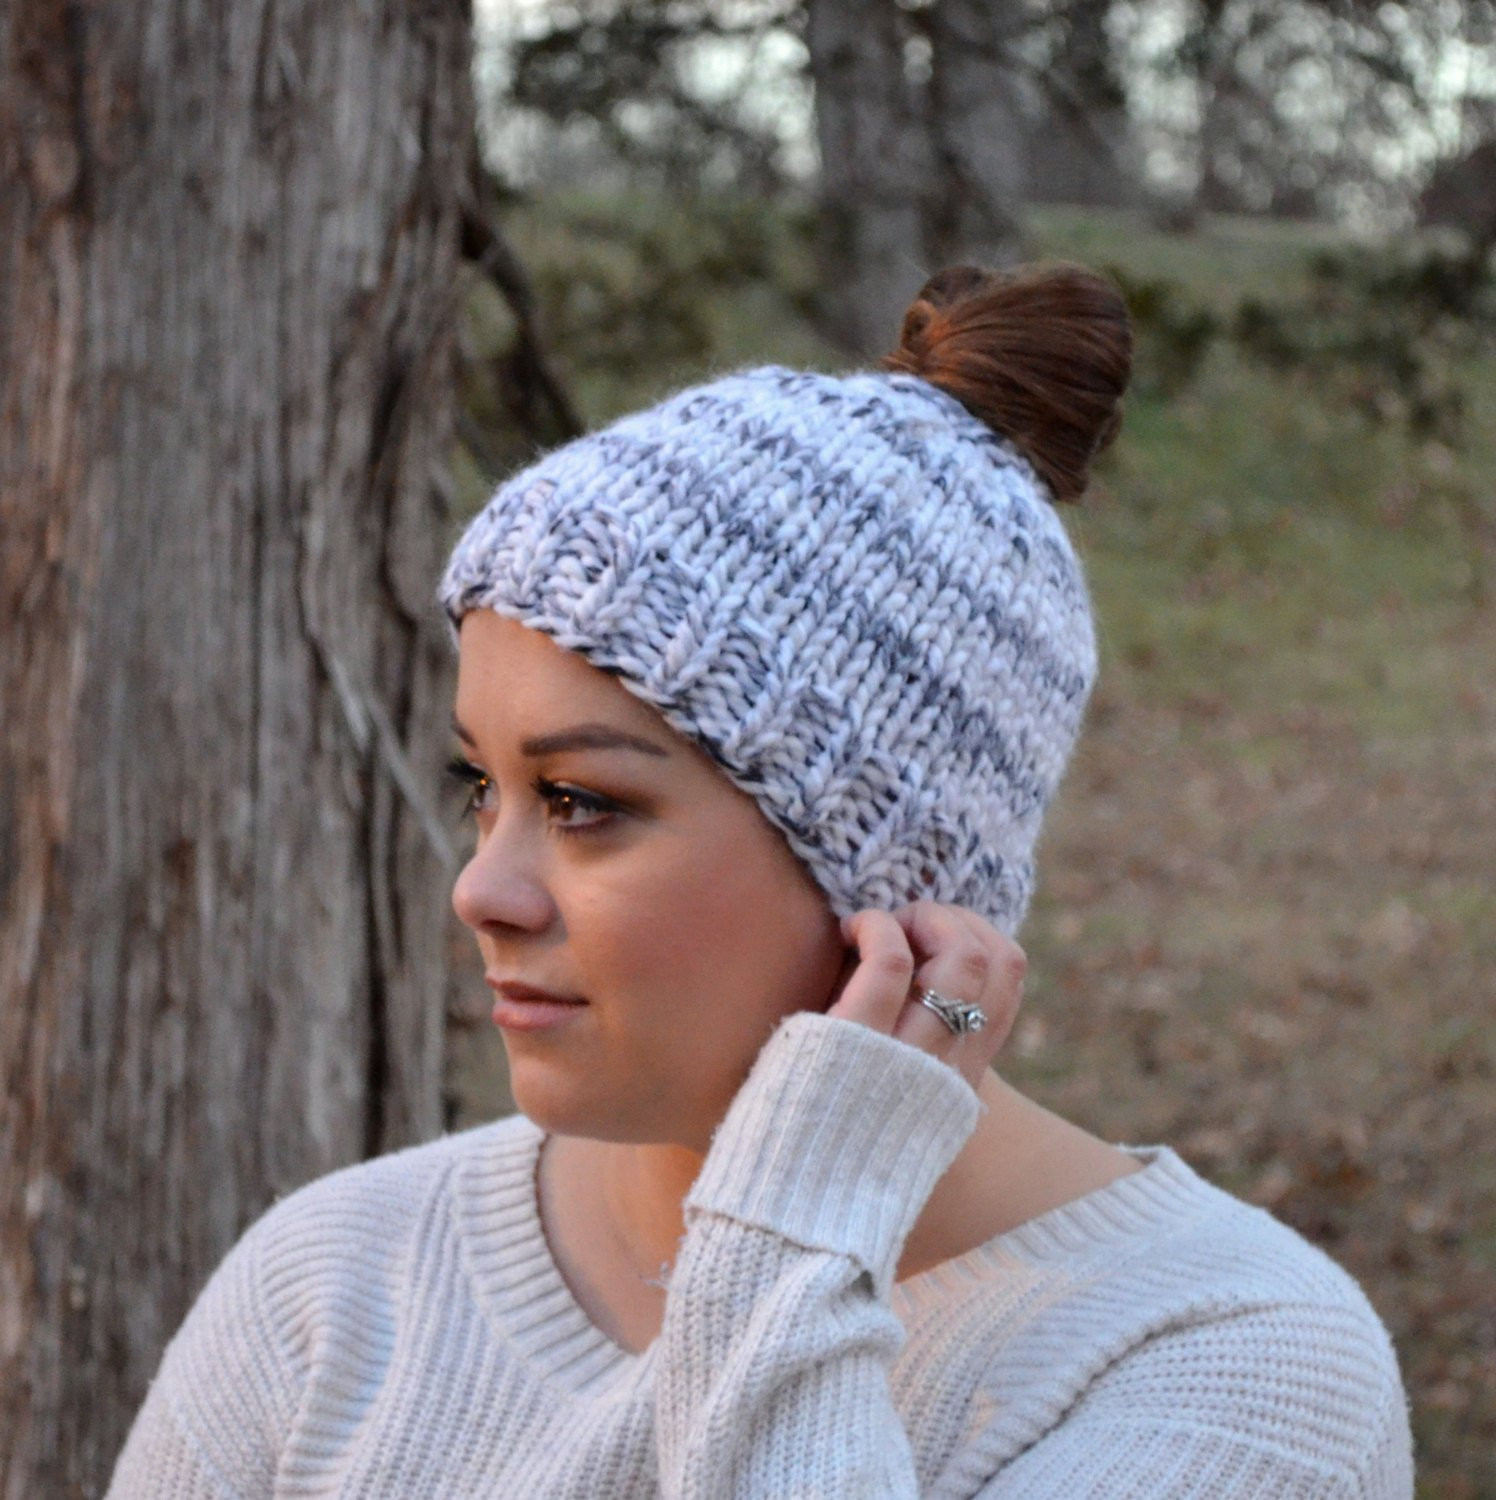 Awesome Ponytail Knit Hat Messy Bun Hat Jogging Hat by theknitpicky Free Knitting Pattern for Messy Bun Hat Of Delightful 40 Pictures Free Knitting Pattern for Messy Bun Hat